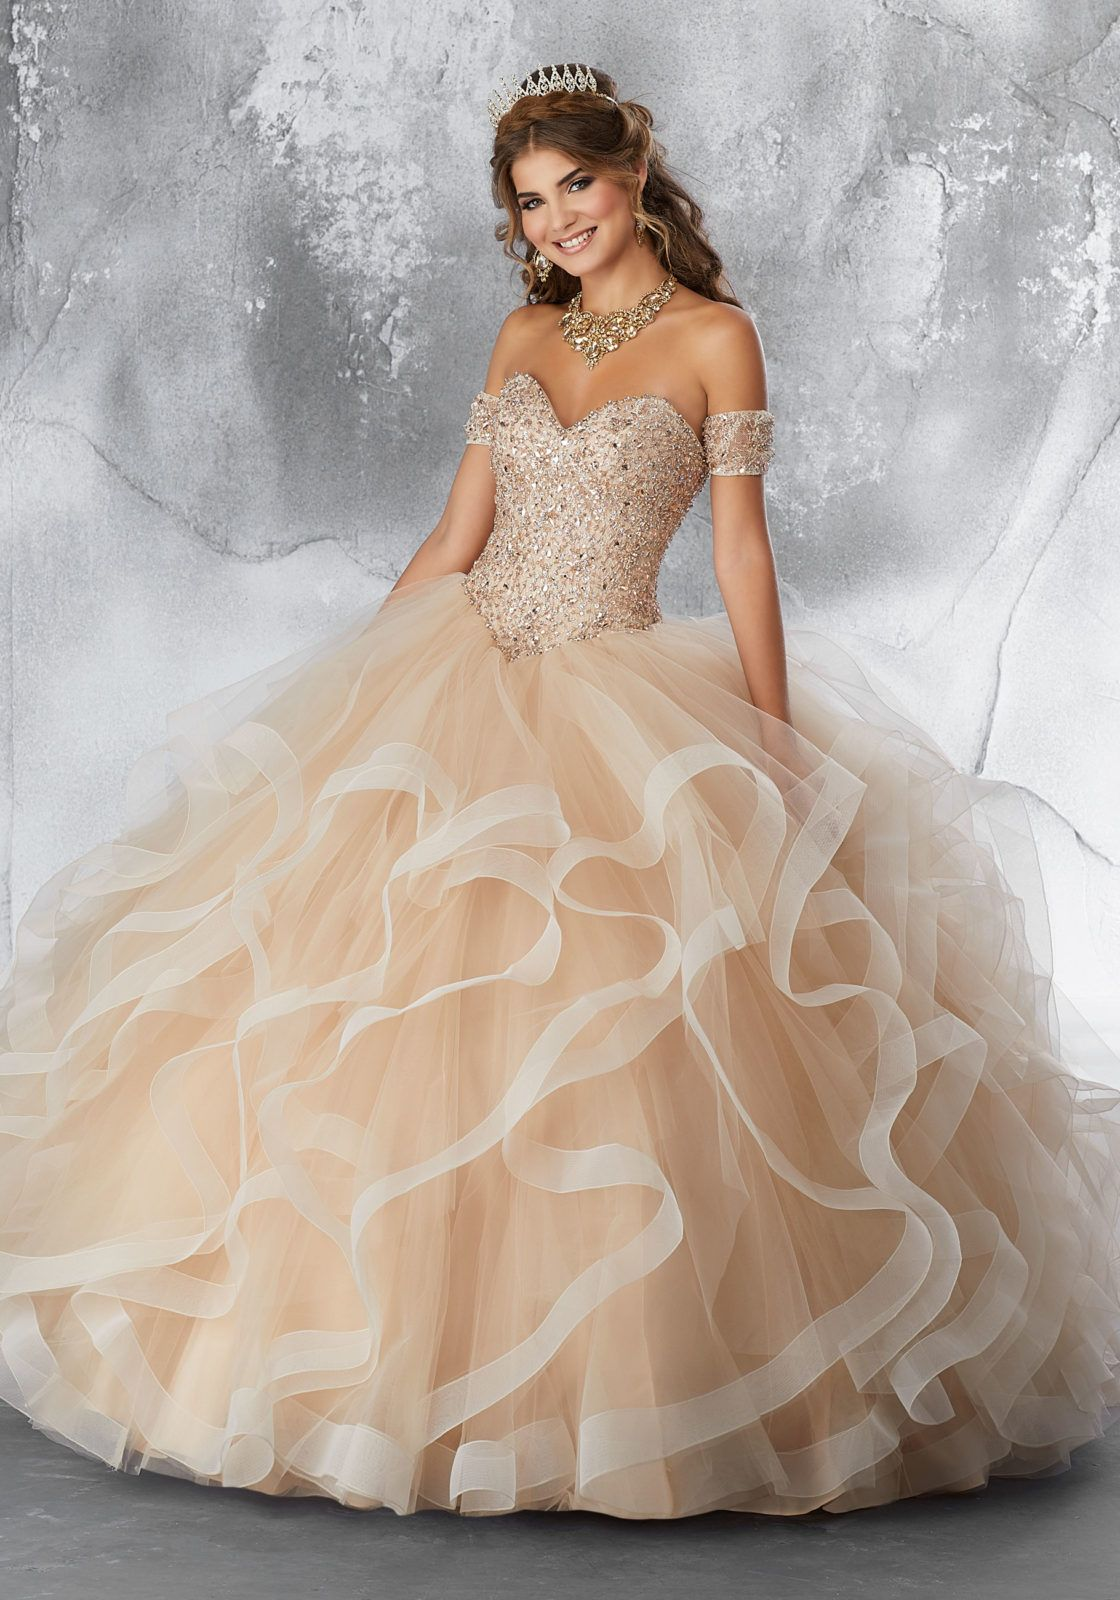 Crystal Beaded Lace Bodice on a Flounced Tulle Ball Gown